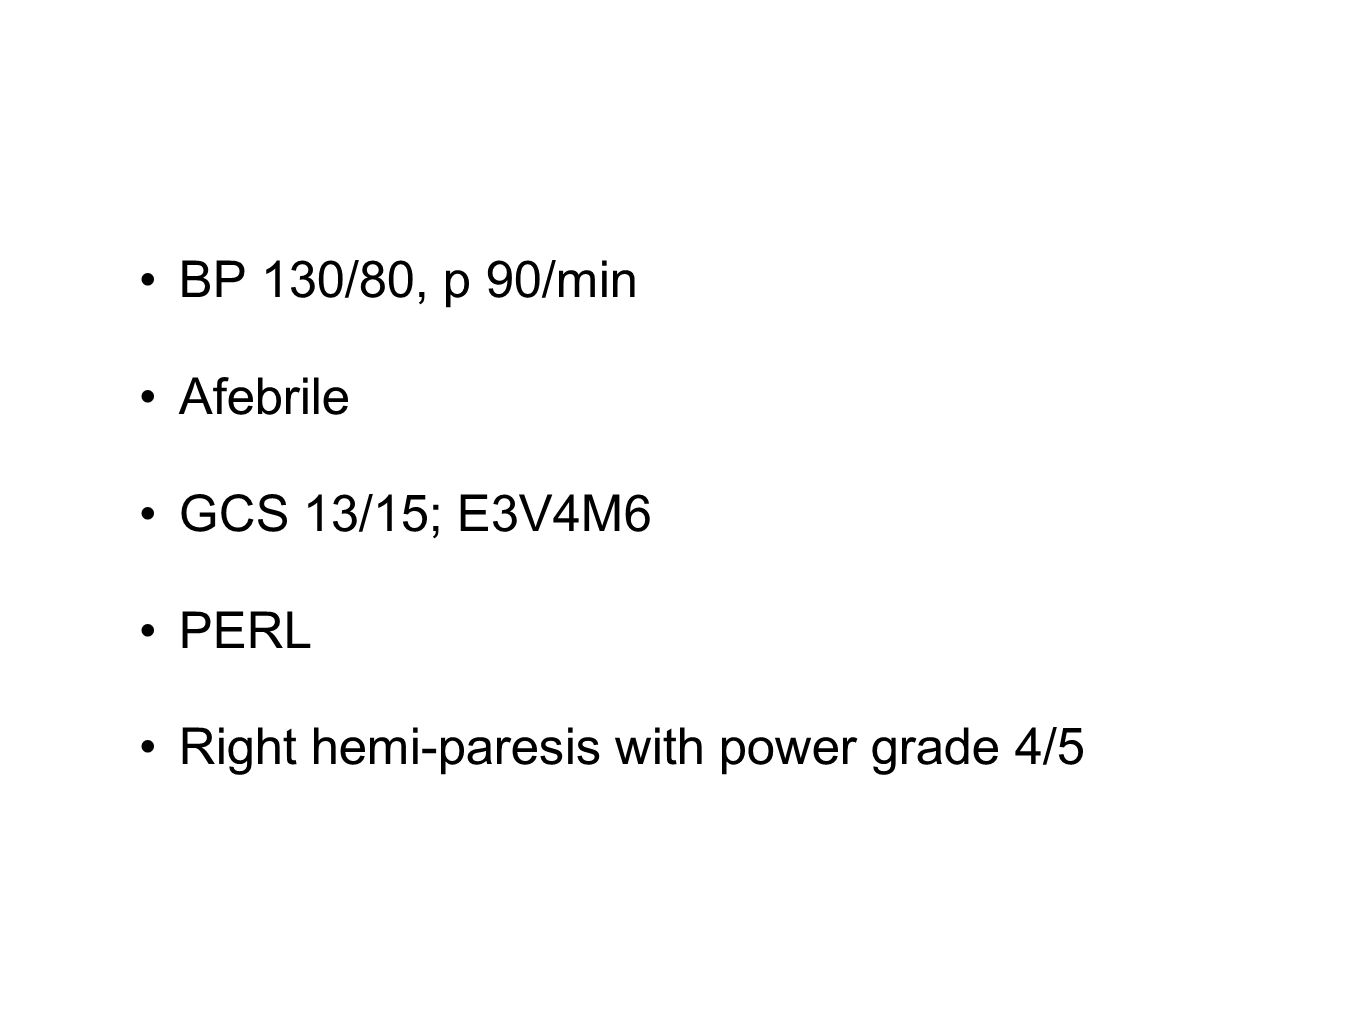 BP 130/80, p 90/min Afebrile GCS 13/15; E3V4M6 PERL Right hemi-paresis with power grade 4/5